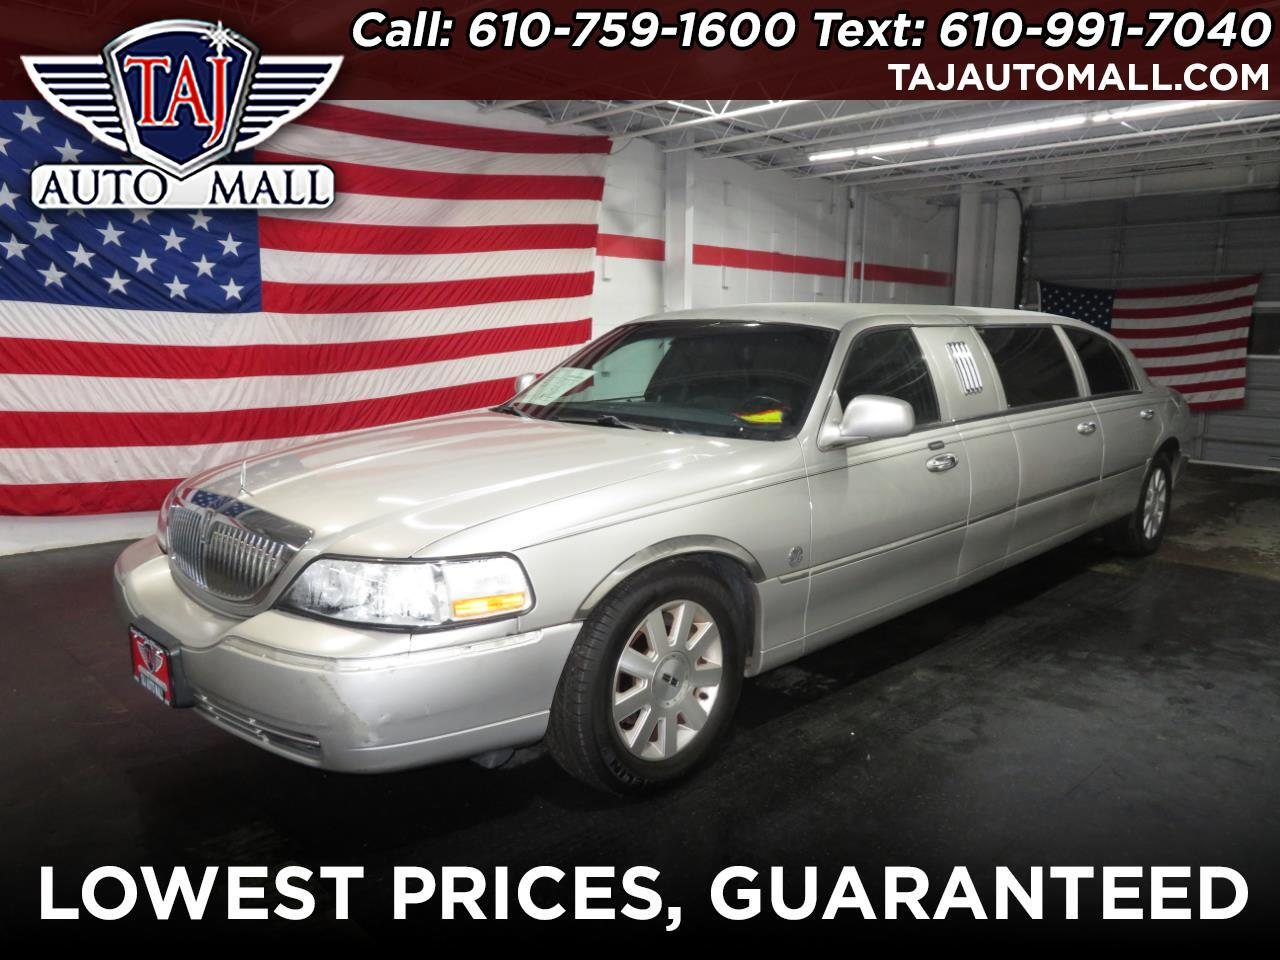 2004 Lincoln Town Car 4dr Sdn Executive w/Livery Pkg